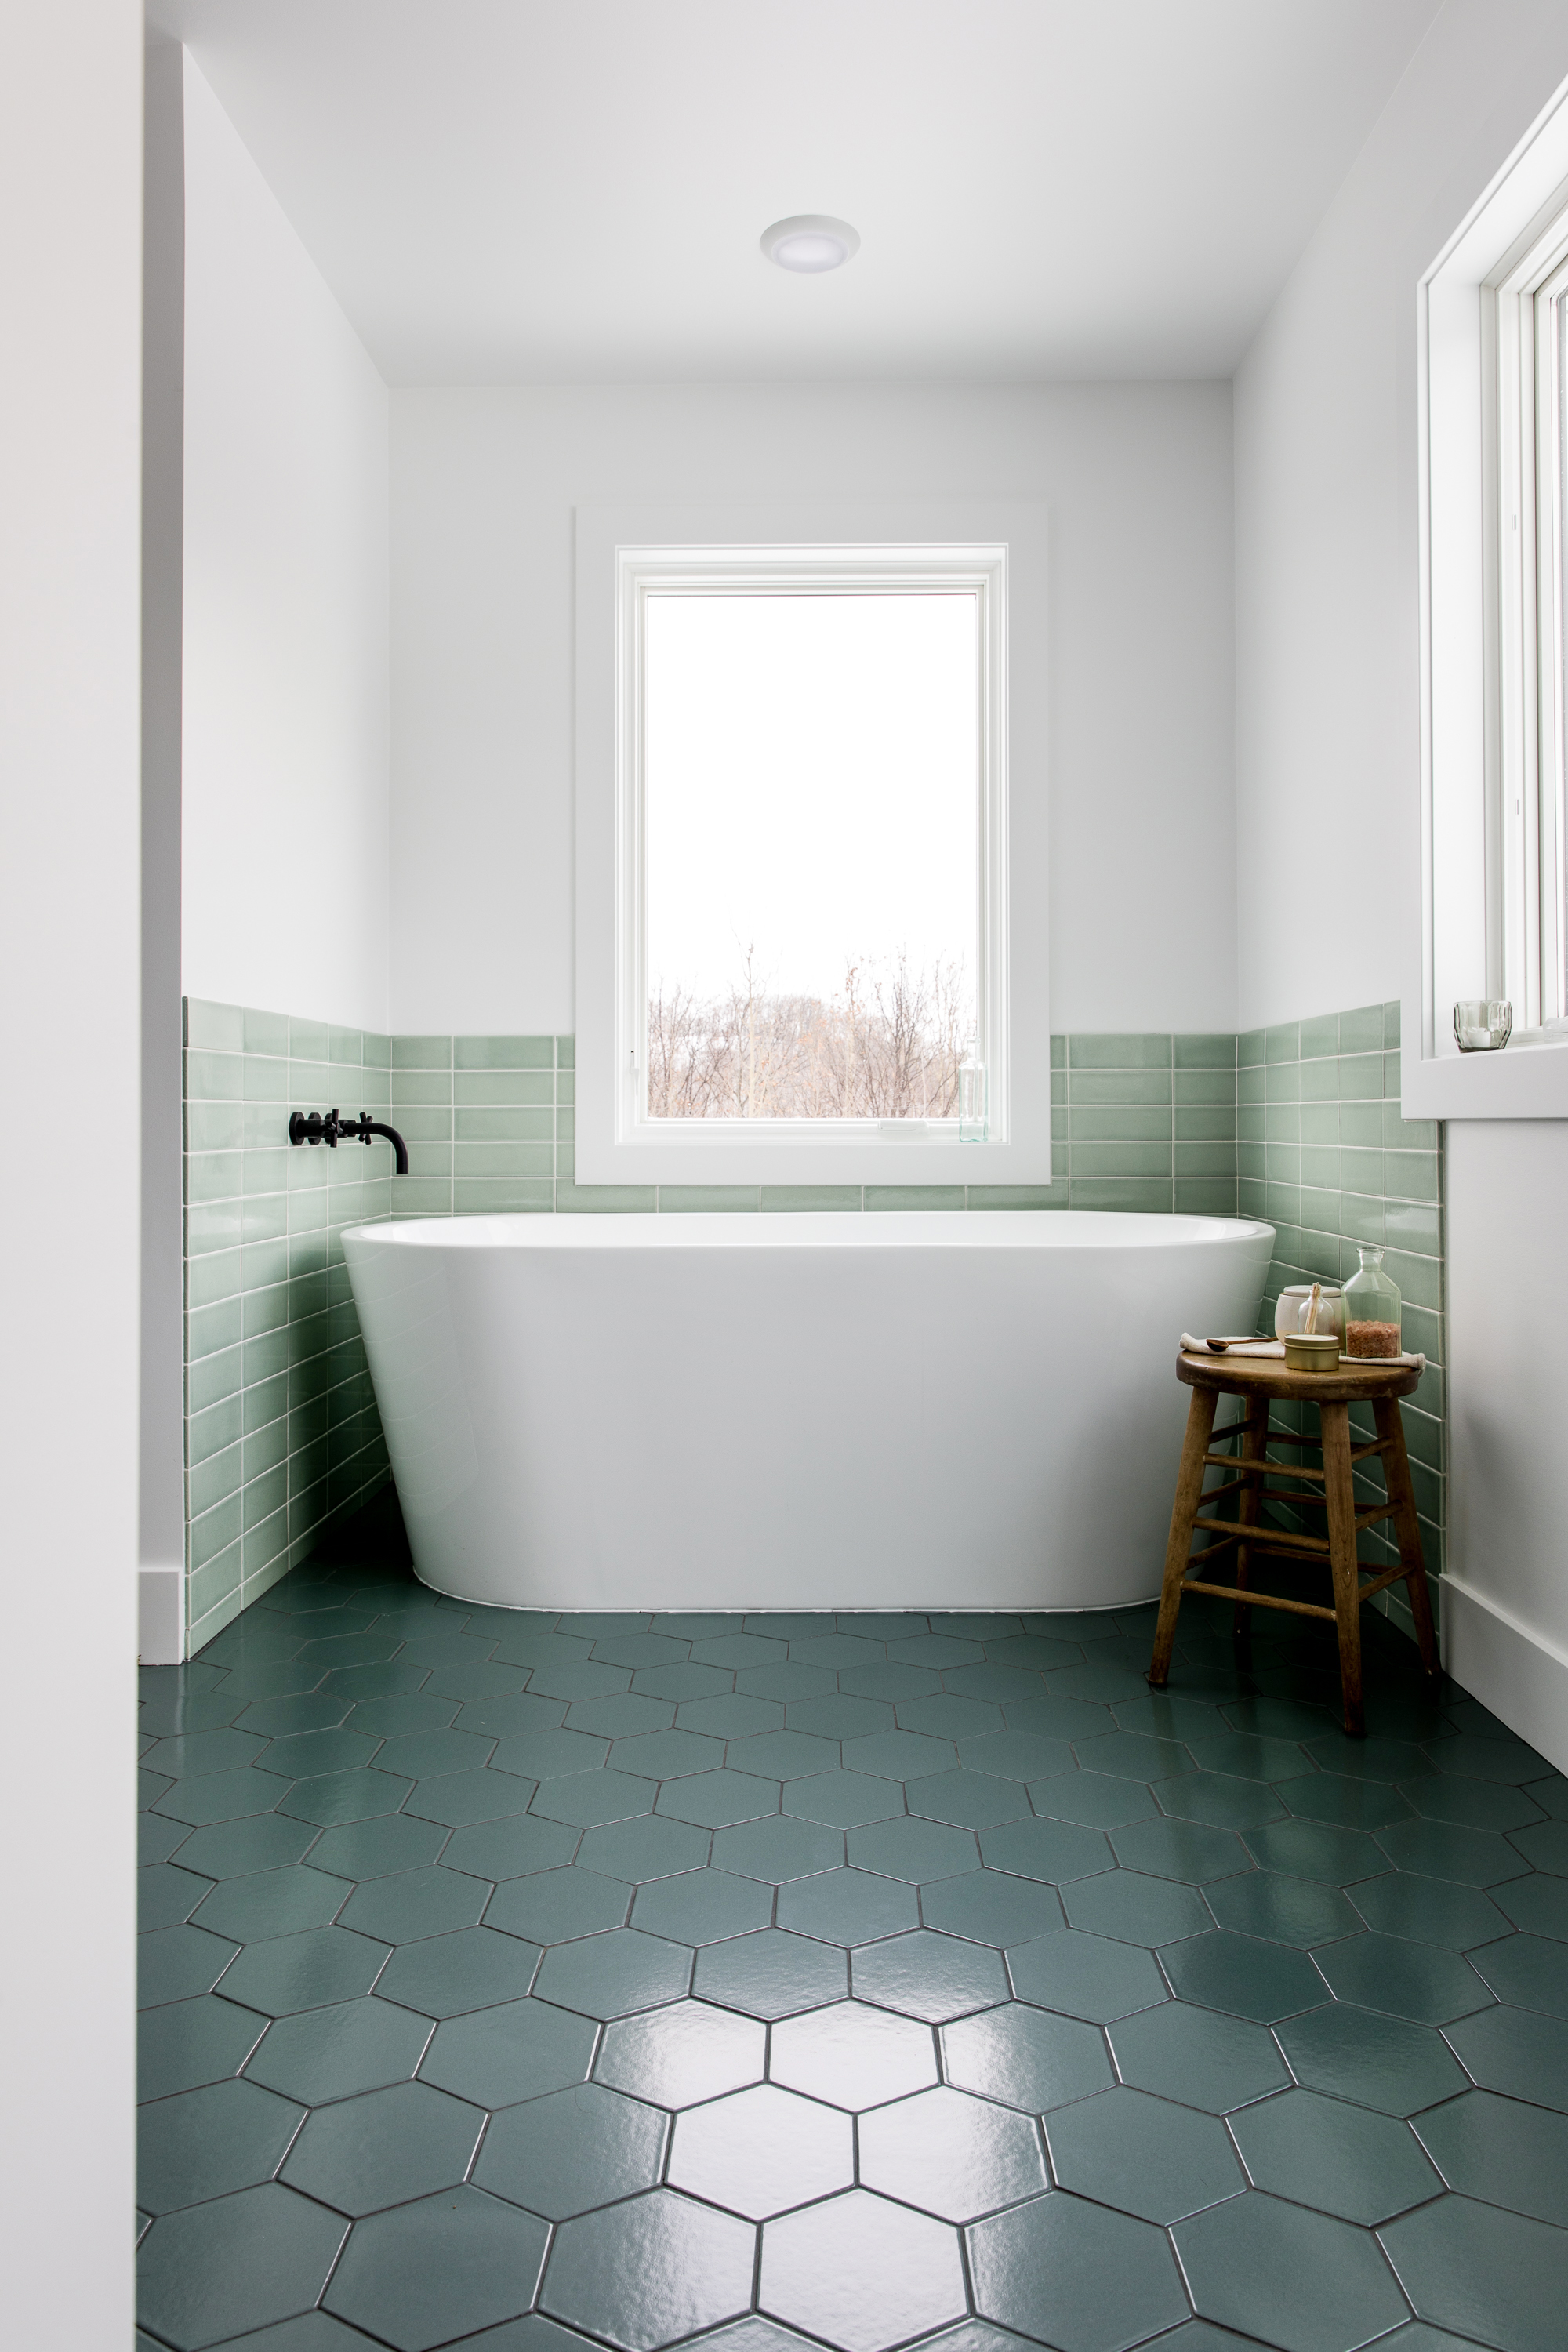 2018_Q1_image_residential_influencer_Fresh_Exchange_master_bathroom_tile_floor_flagstone_hexagon_6_wall_salton_sea_3x9_straight_set_with_tub_surround_full.jpg?mtime=20180709224104#asset:386640